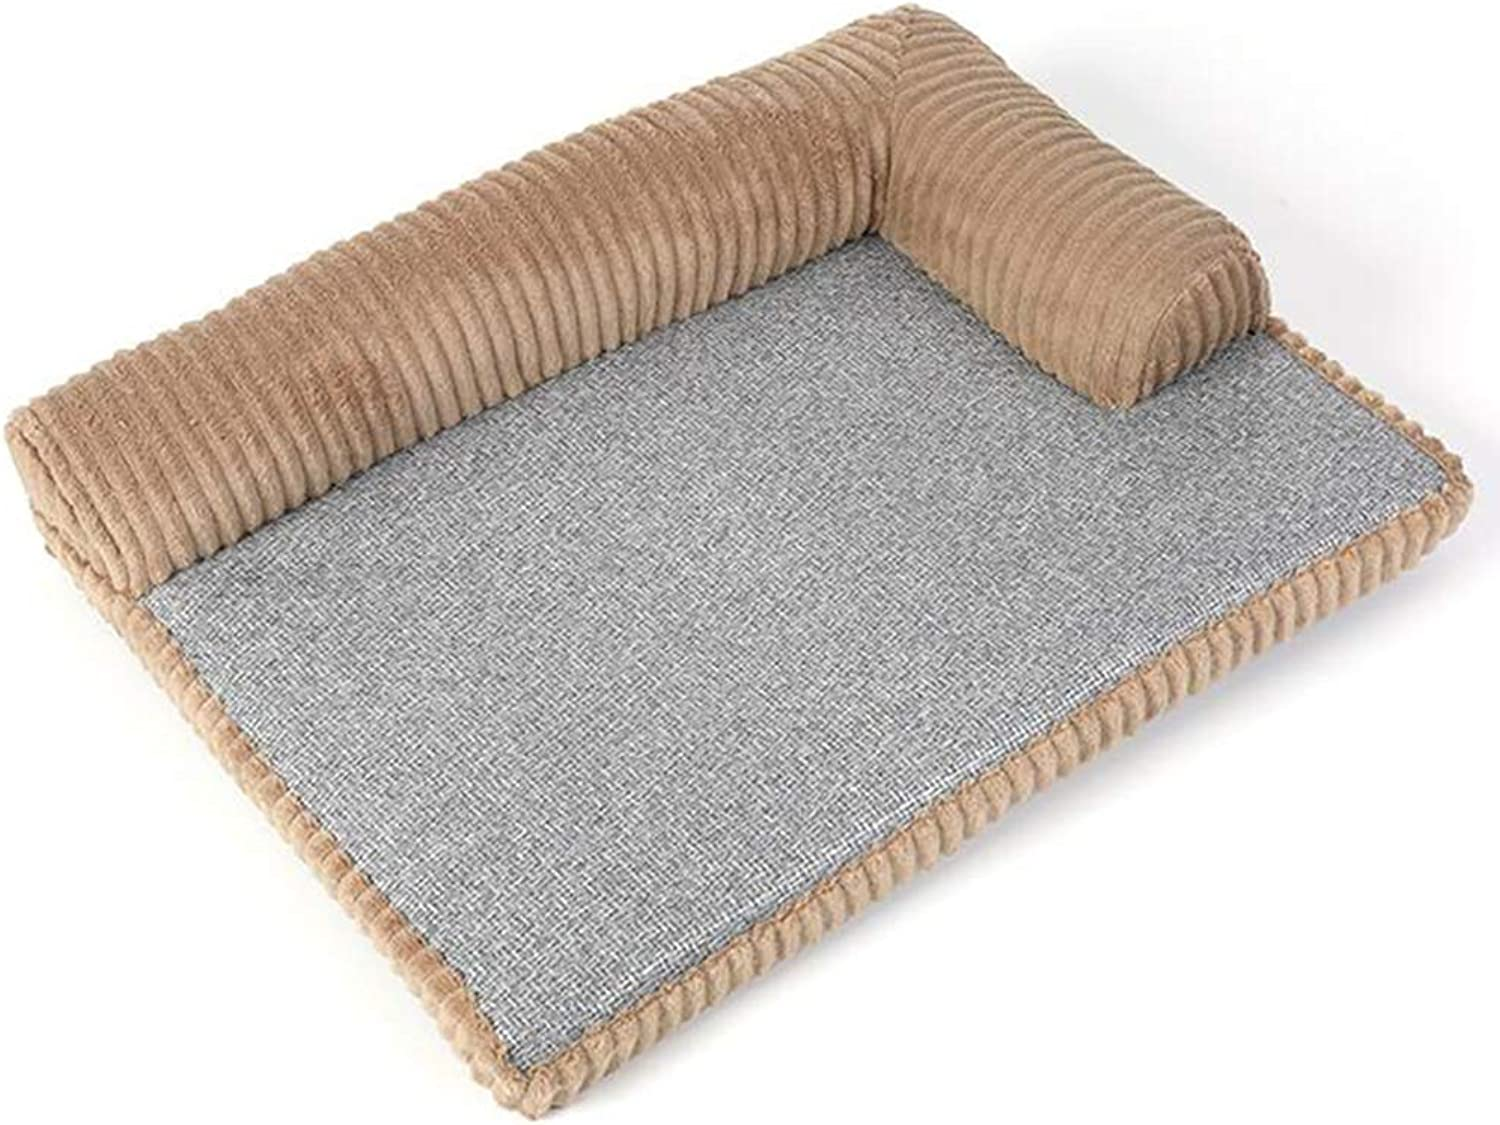 CUUYQ Deluxe pet beds, Cozy Dog & cat beds Soft pad Pet Bed Washable Pet Cushion Nonslip for Dogs & Cats,Brown_S